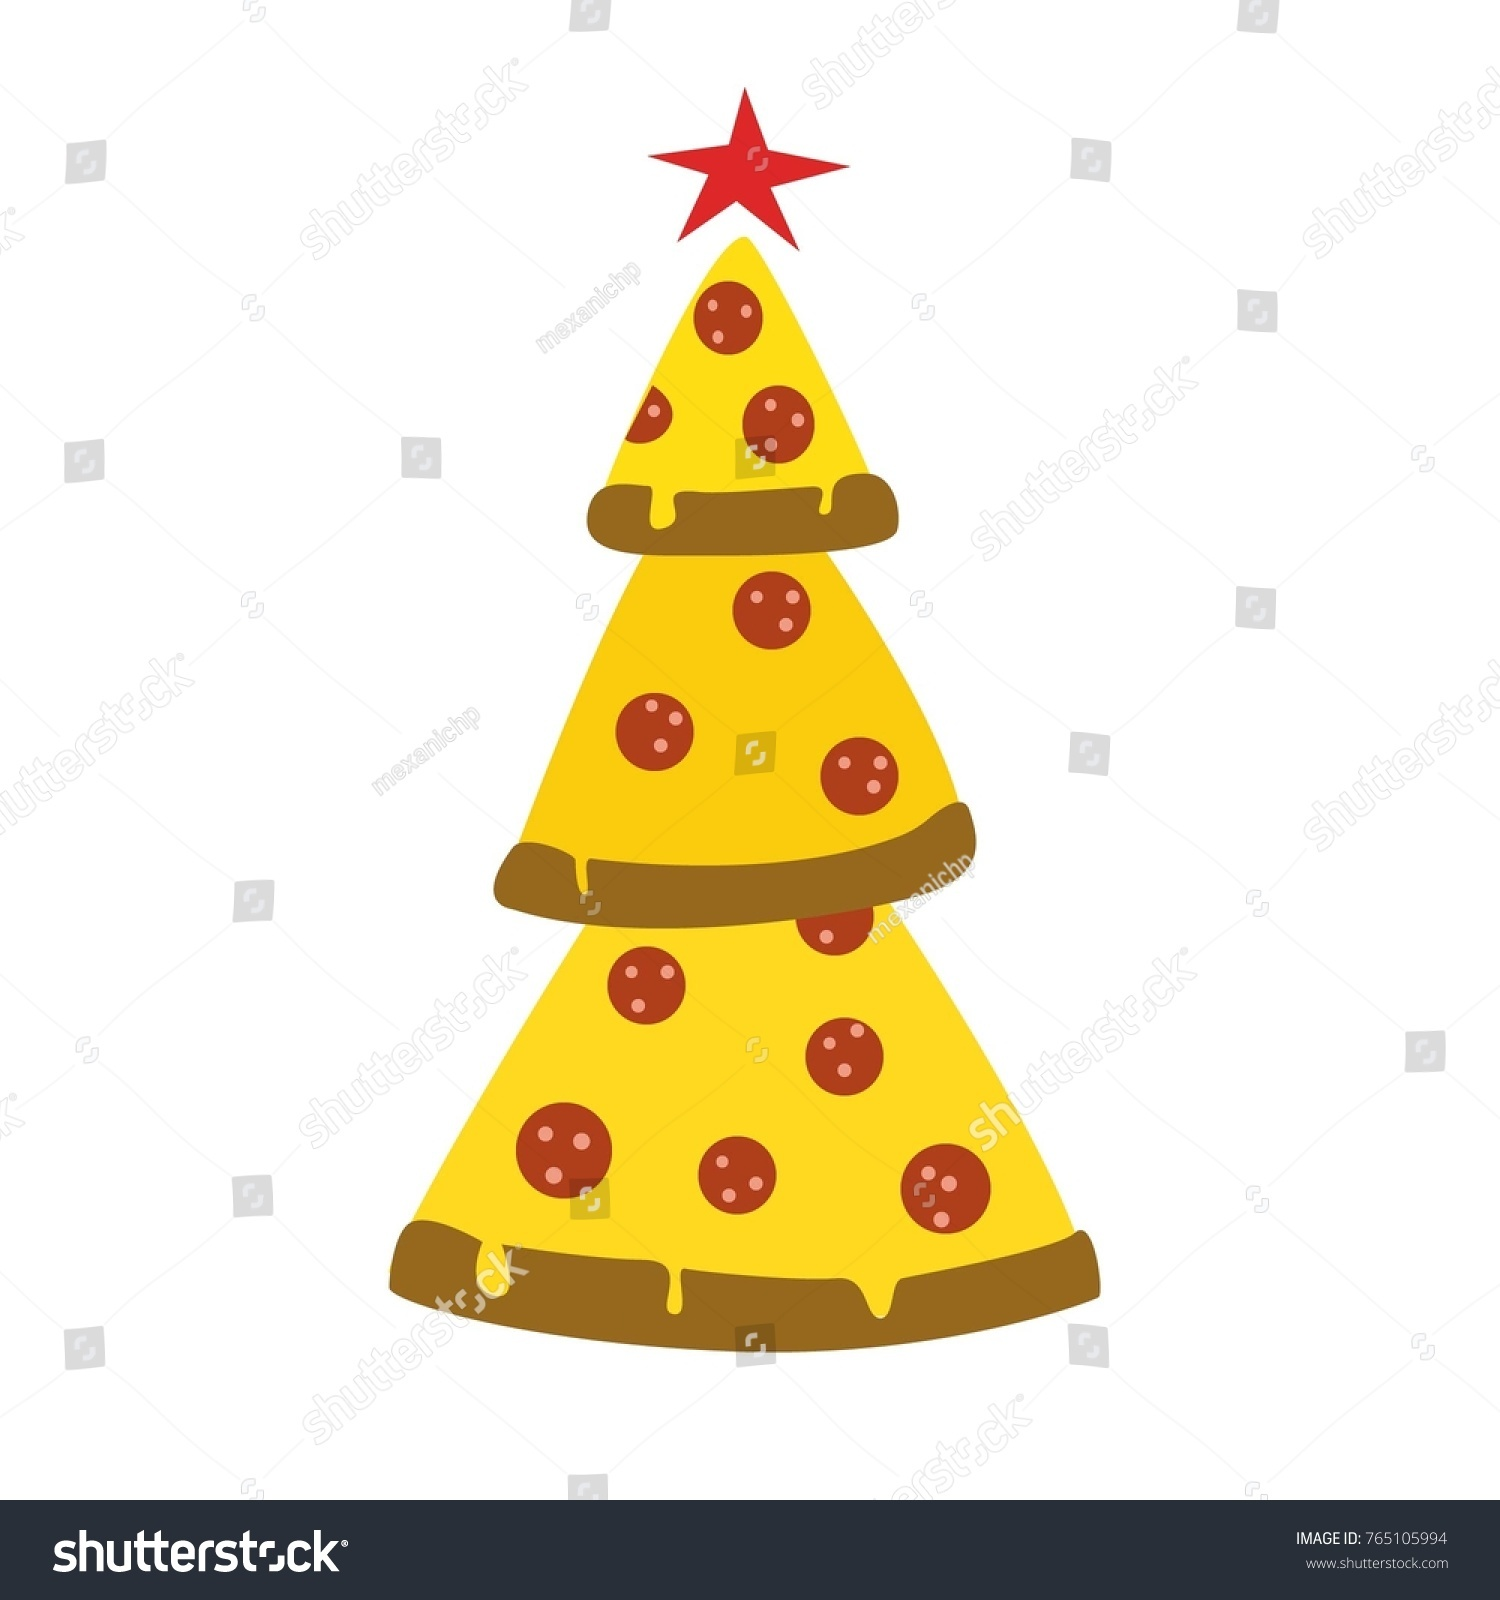 Jokes Images Christmas Tree Pizza Stock Vector (Royalty Free ...